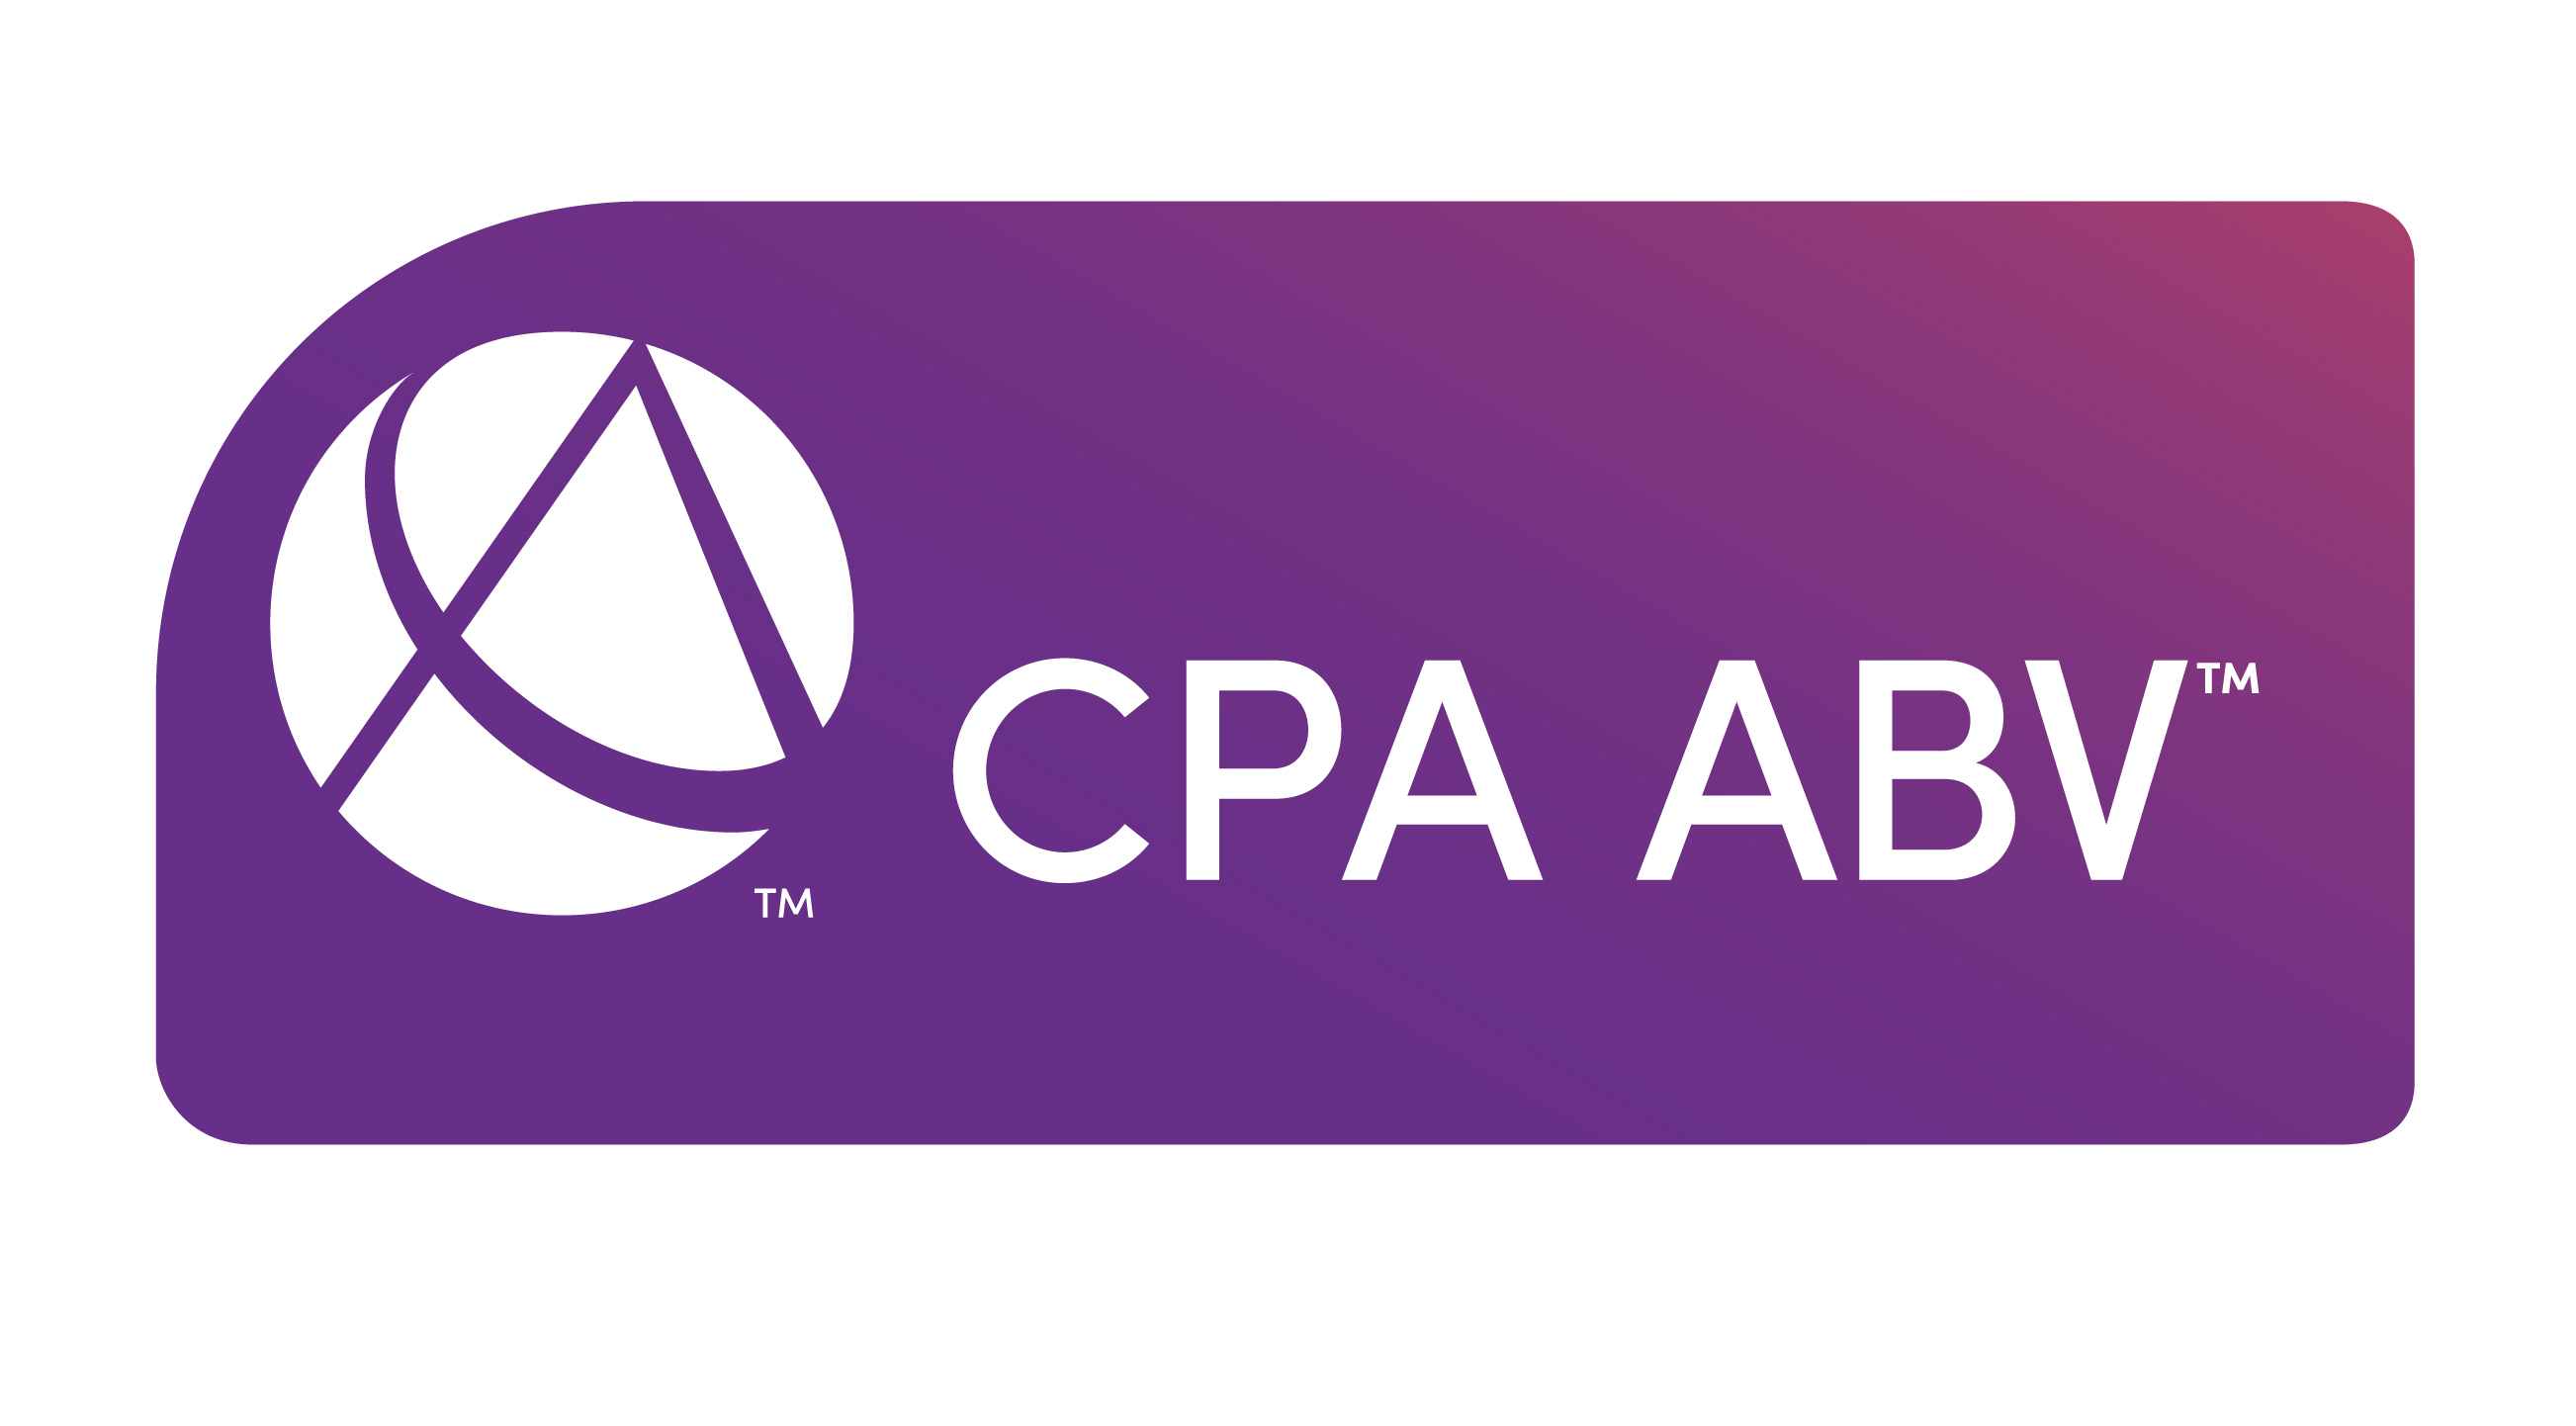 client Cpa abv credential logo